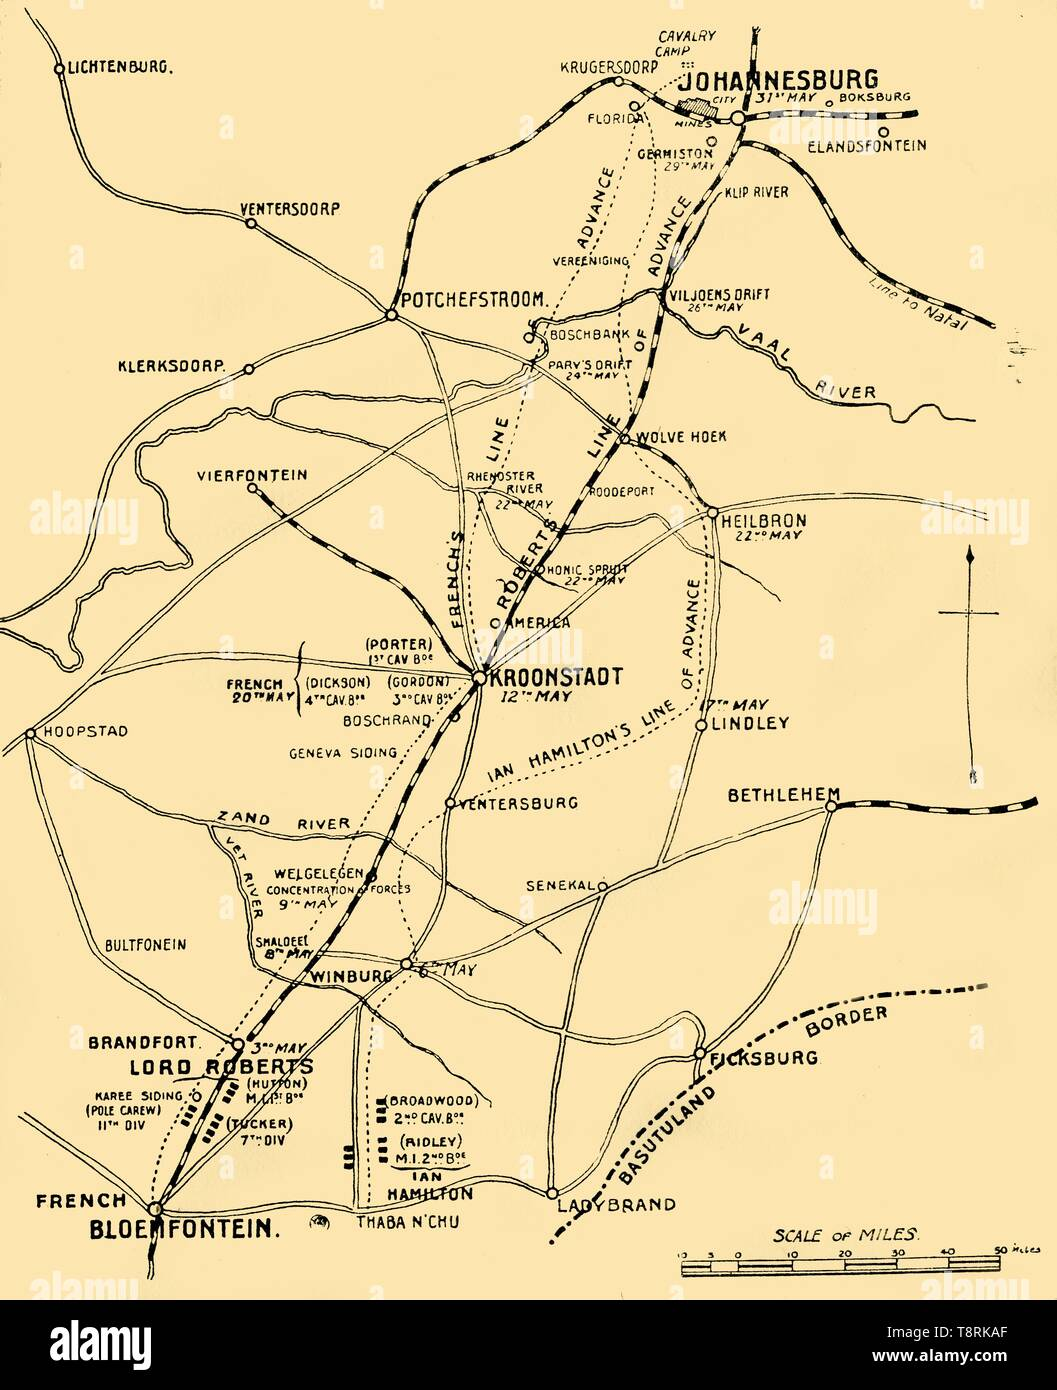 'Map Showing the Lines of Advance from Bloemfontein to Pretoria', 1901. Creator: Unknown. - Stock Image